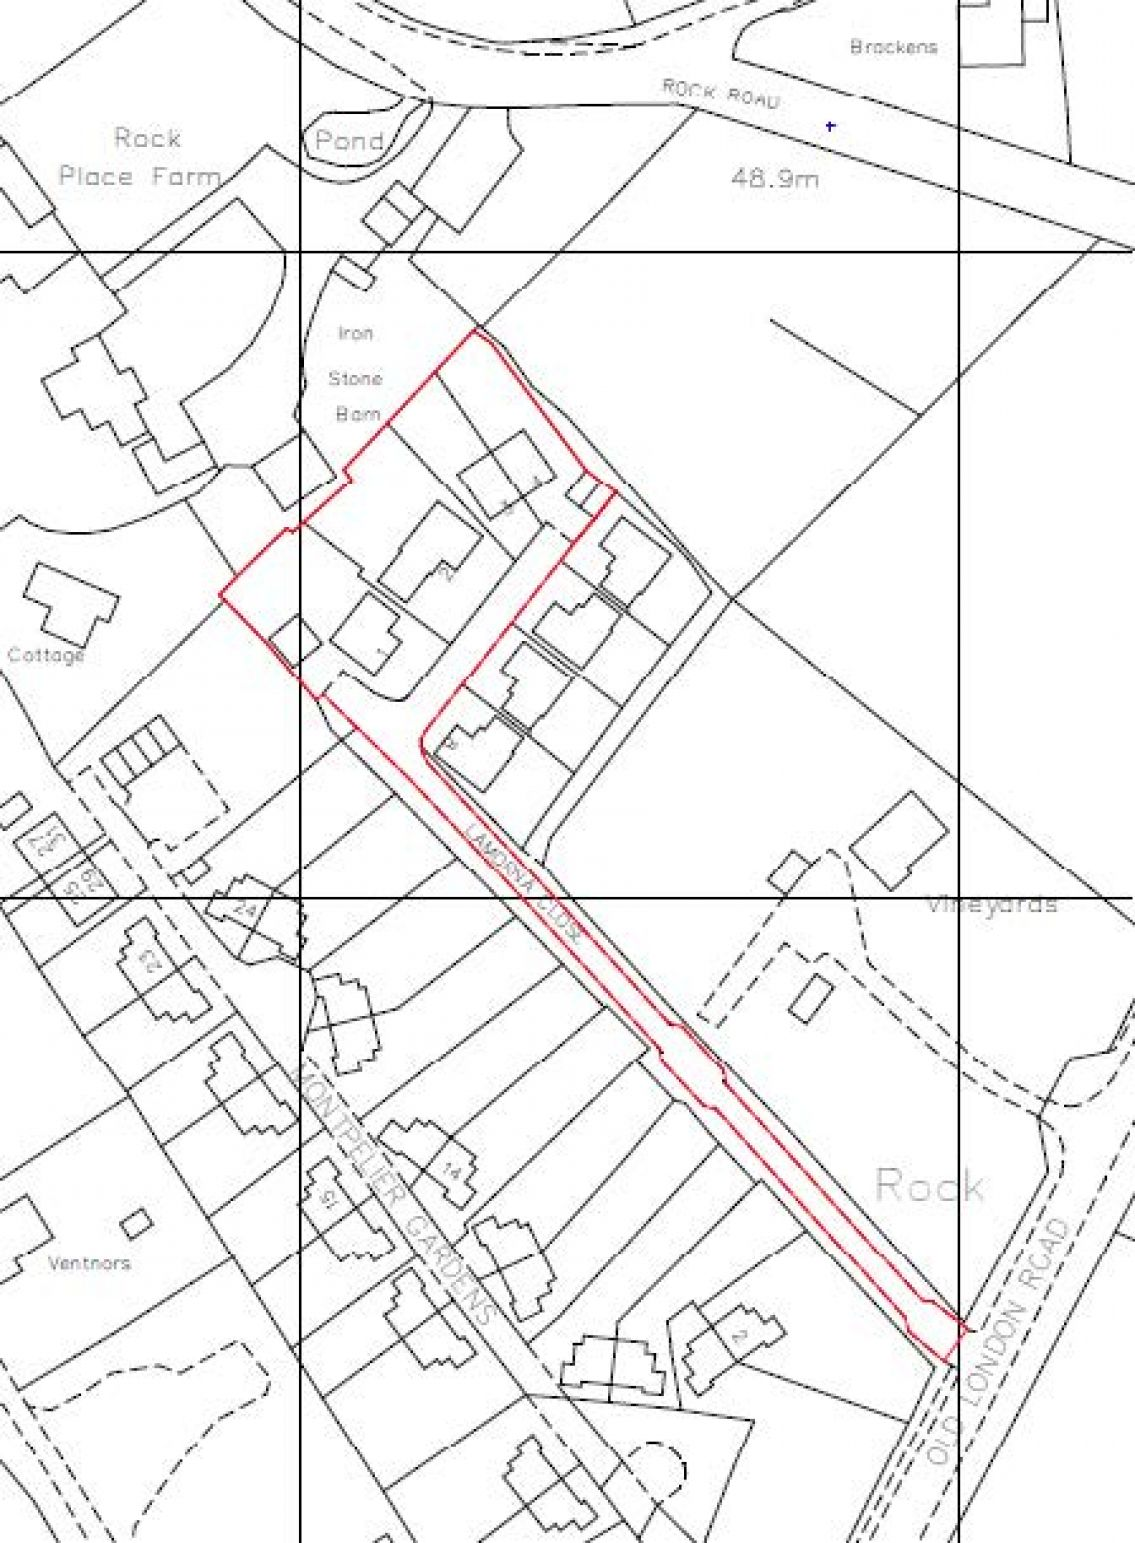 A red outline is drawn around the proposed location for development